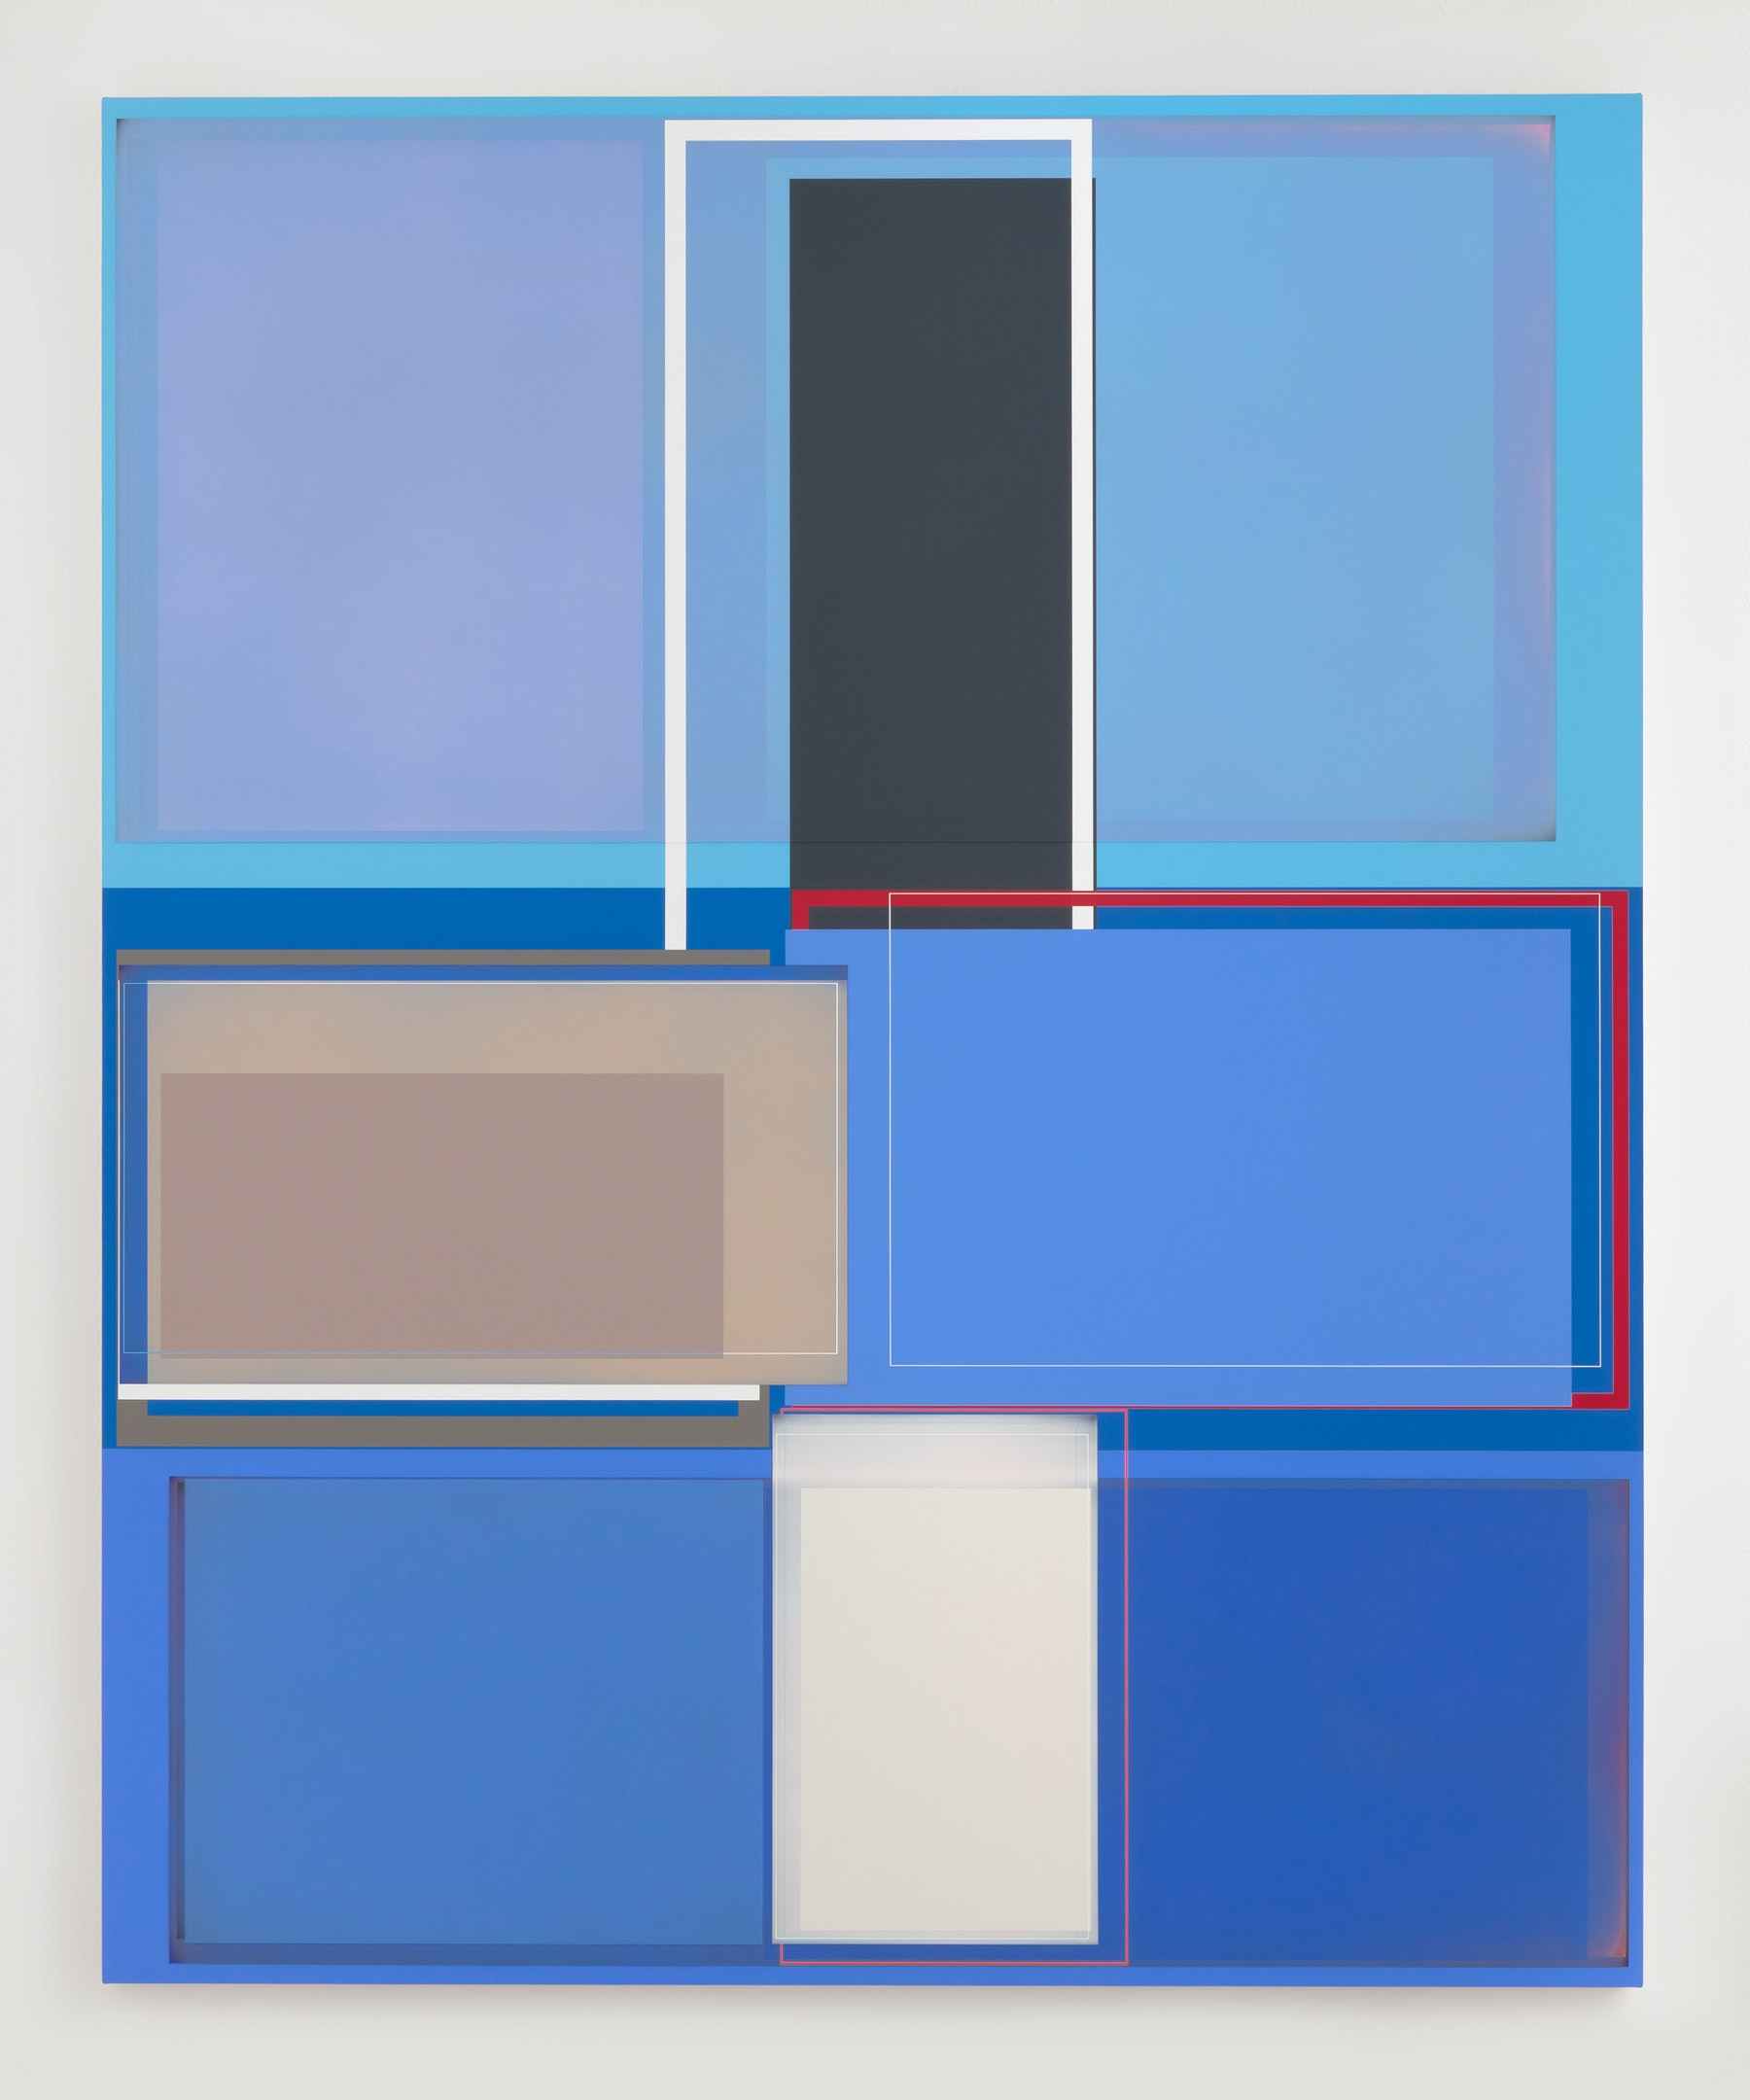 """Patrick Wilson """"Wind Gauge,"""" 2020 Acrylic on canvas 86"""" x 70"""" [HxW] (218.44 x 177.8 cm) Inventory #WIL580 Courtesy of the artist and Vielmetter Los Angeles Photo credit: Robert Wedemeyer"""